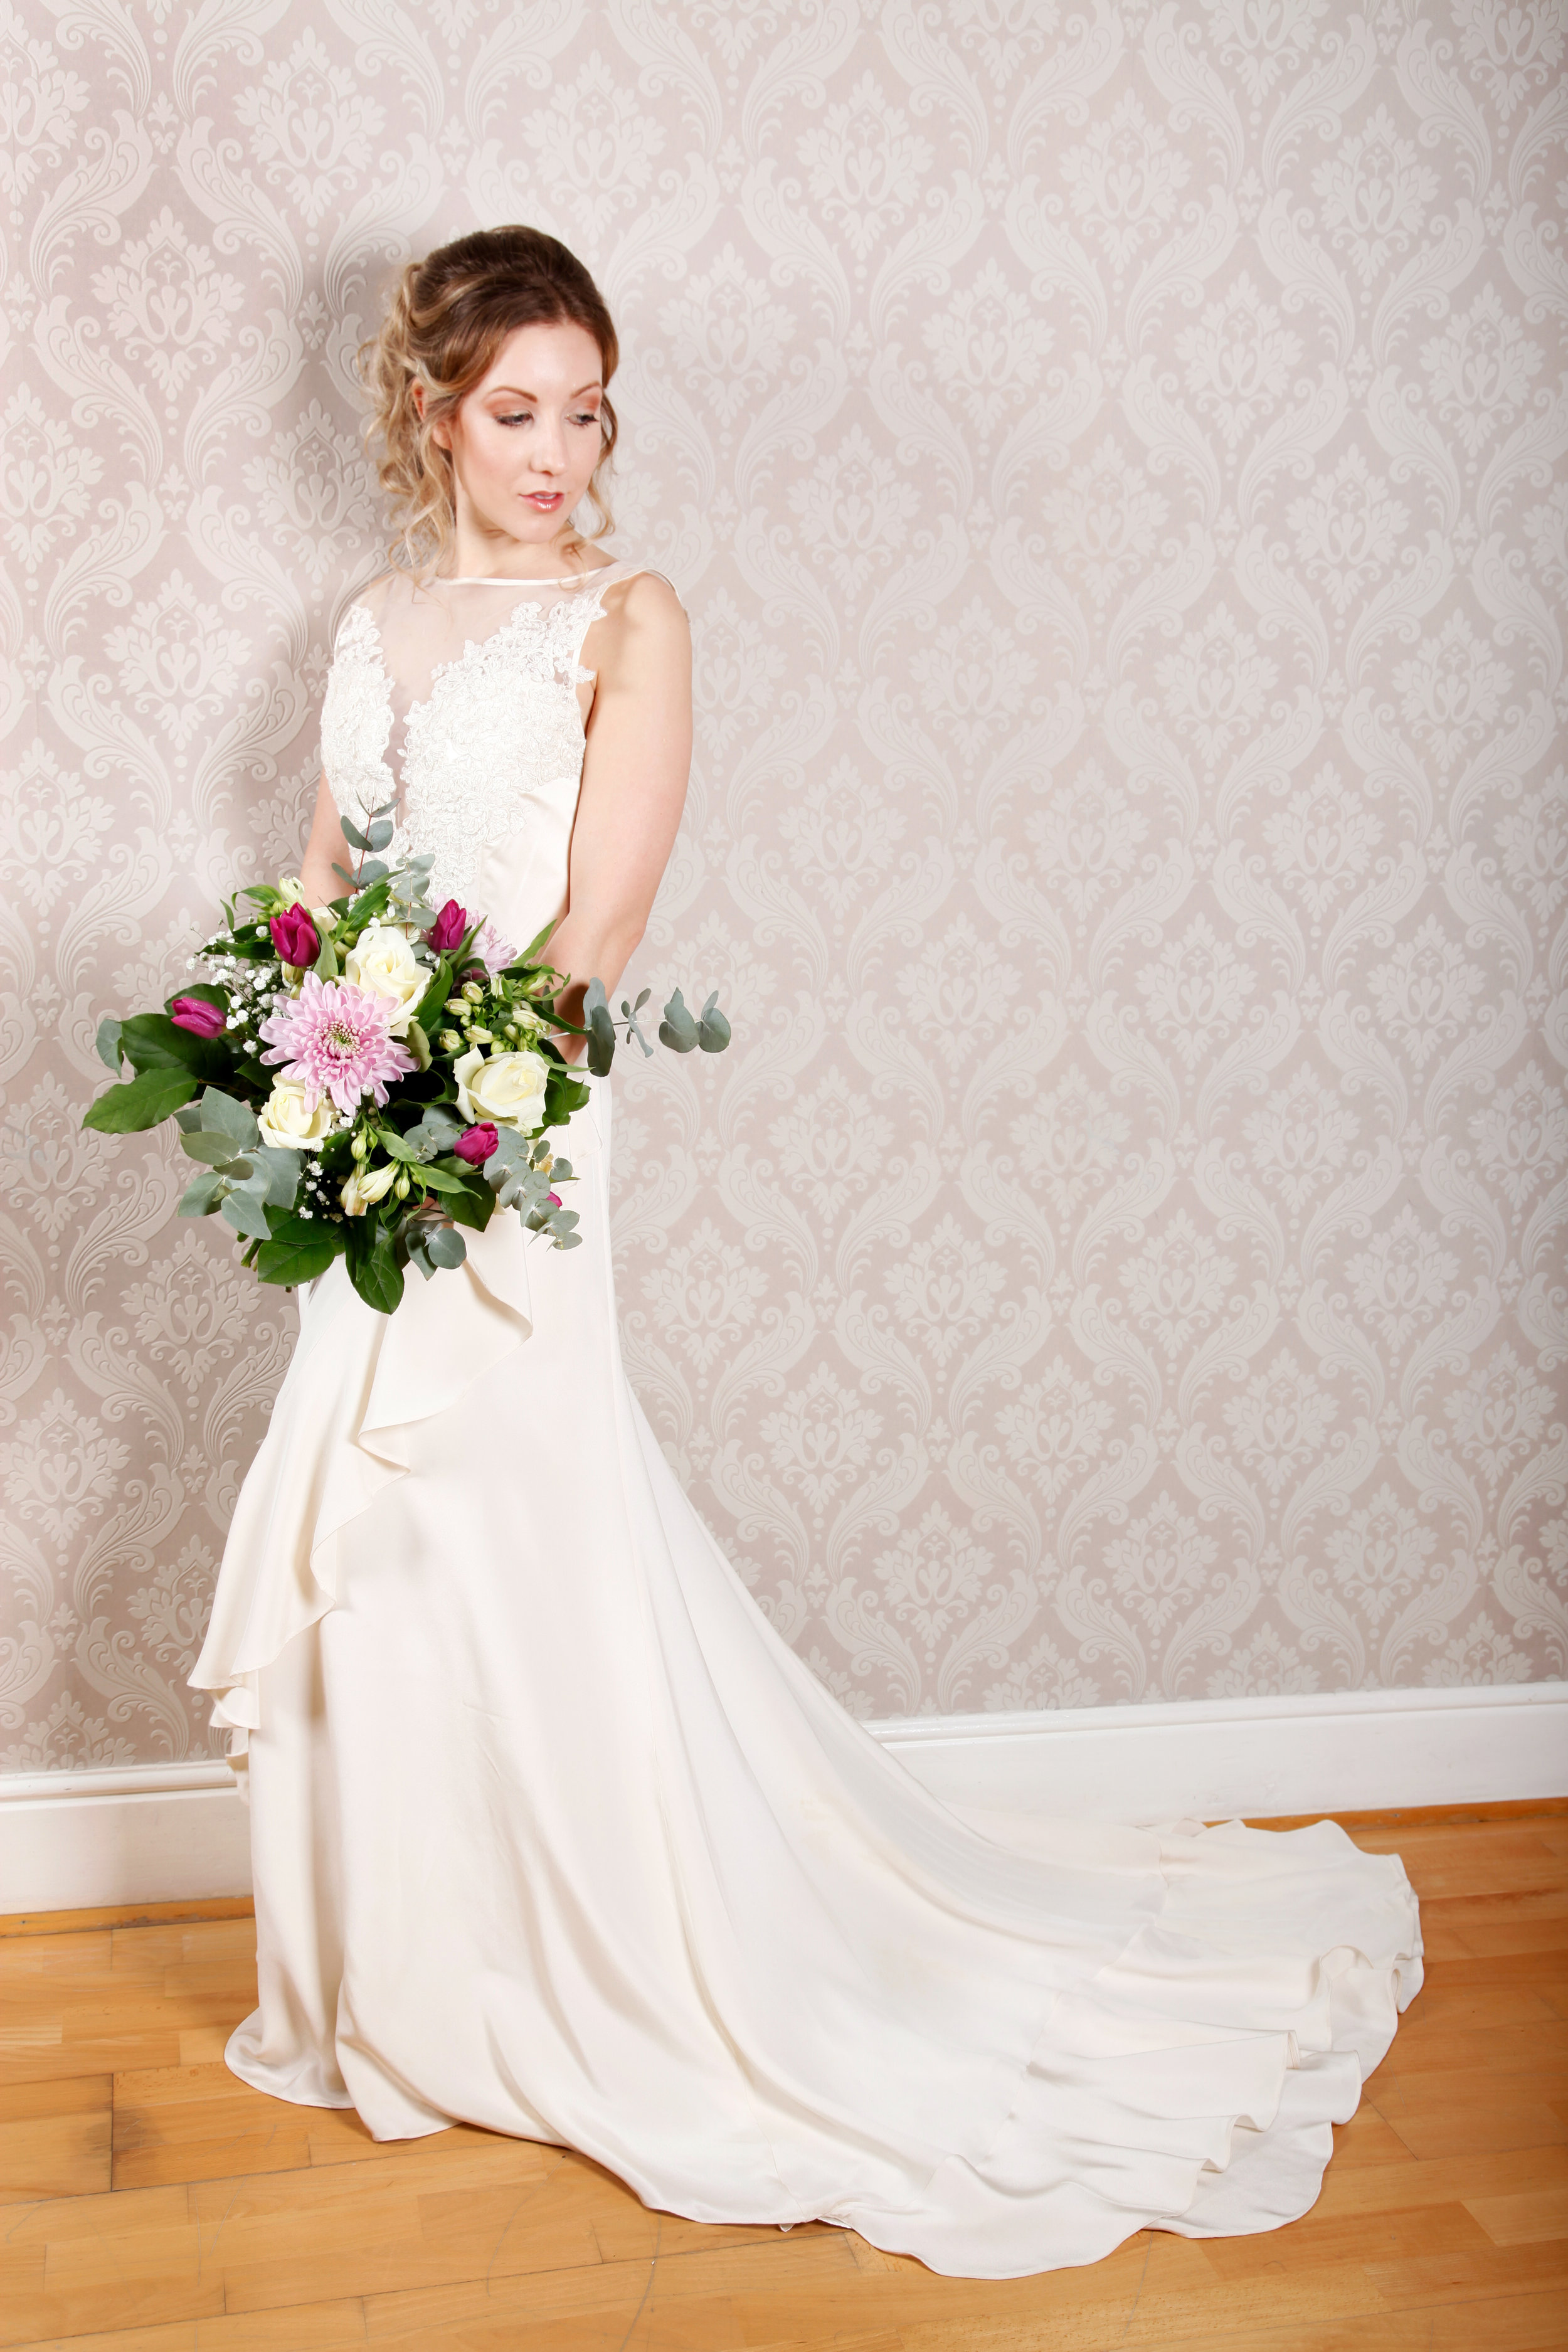 Bridal shoot, full length wedding dress